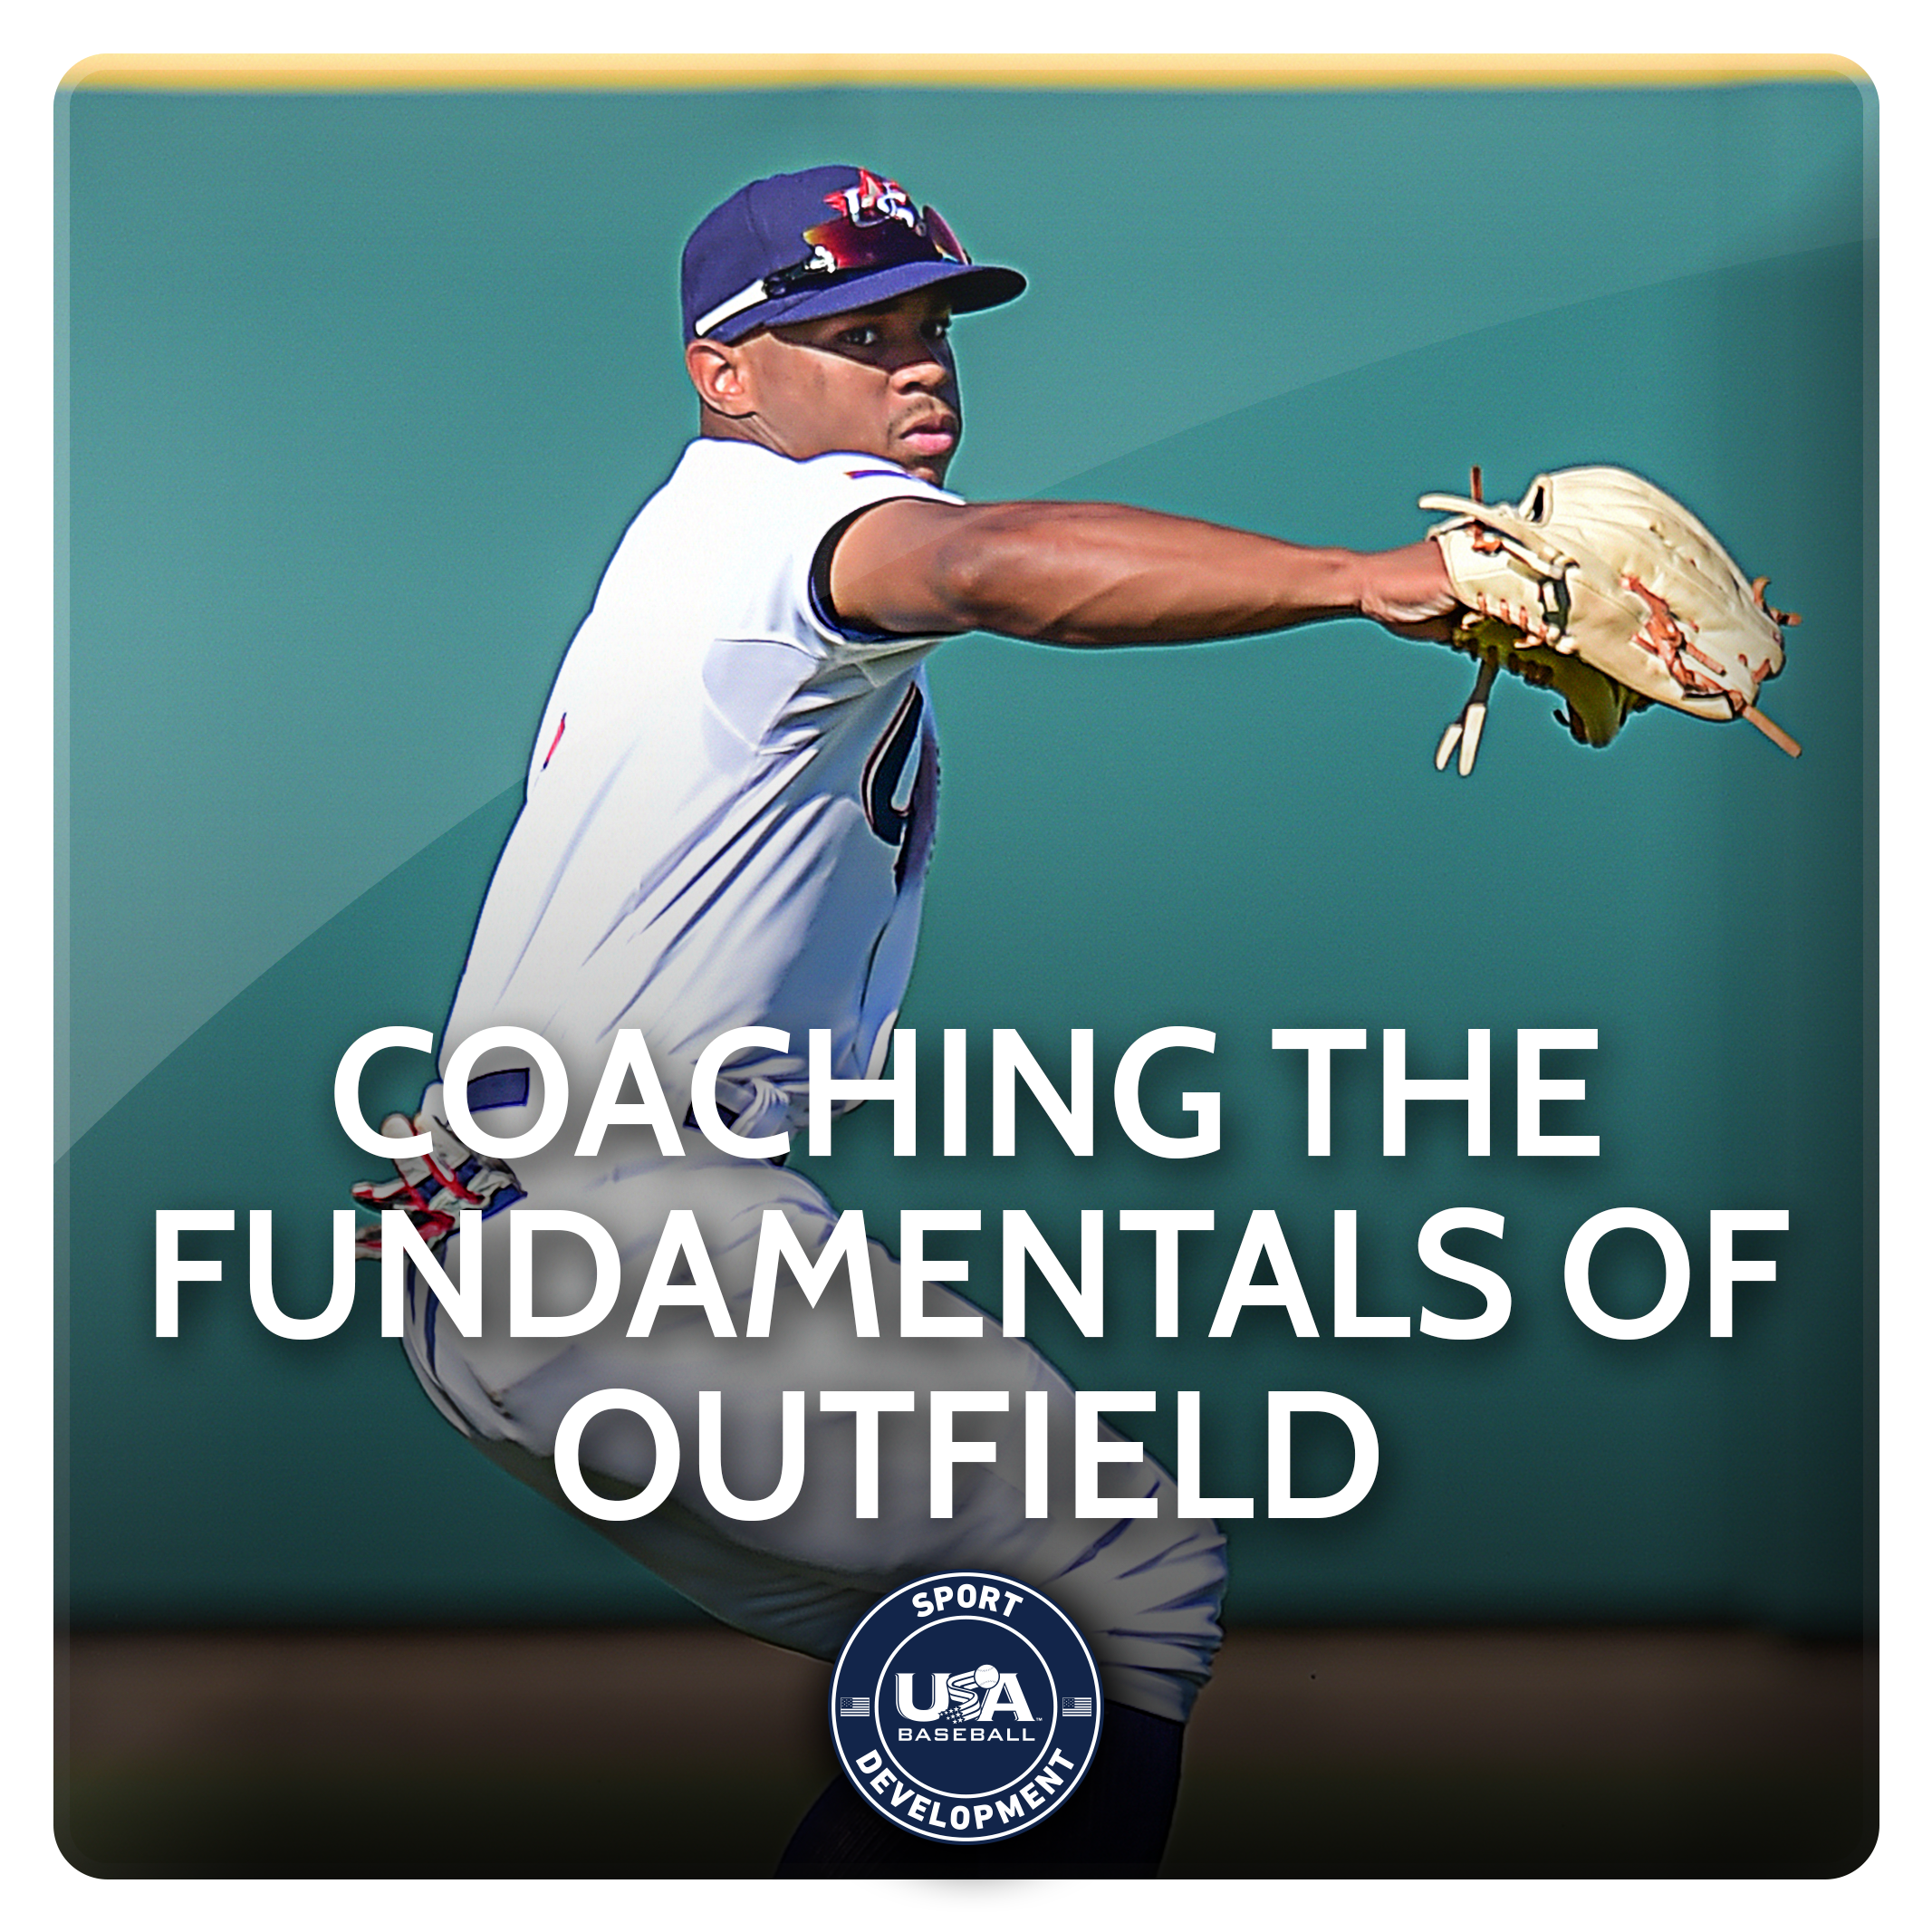 Coaching the Fundamentals of Outfield